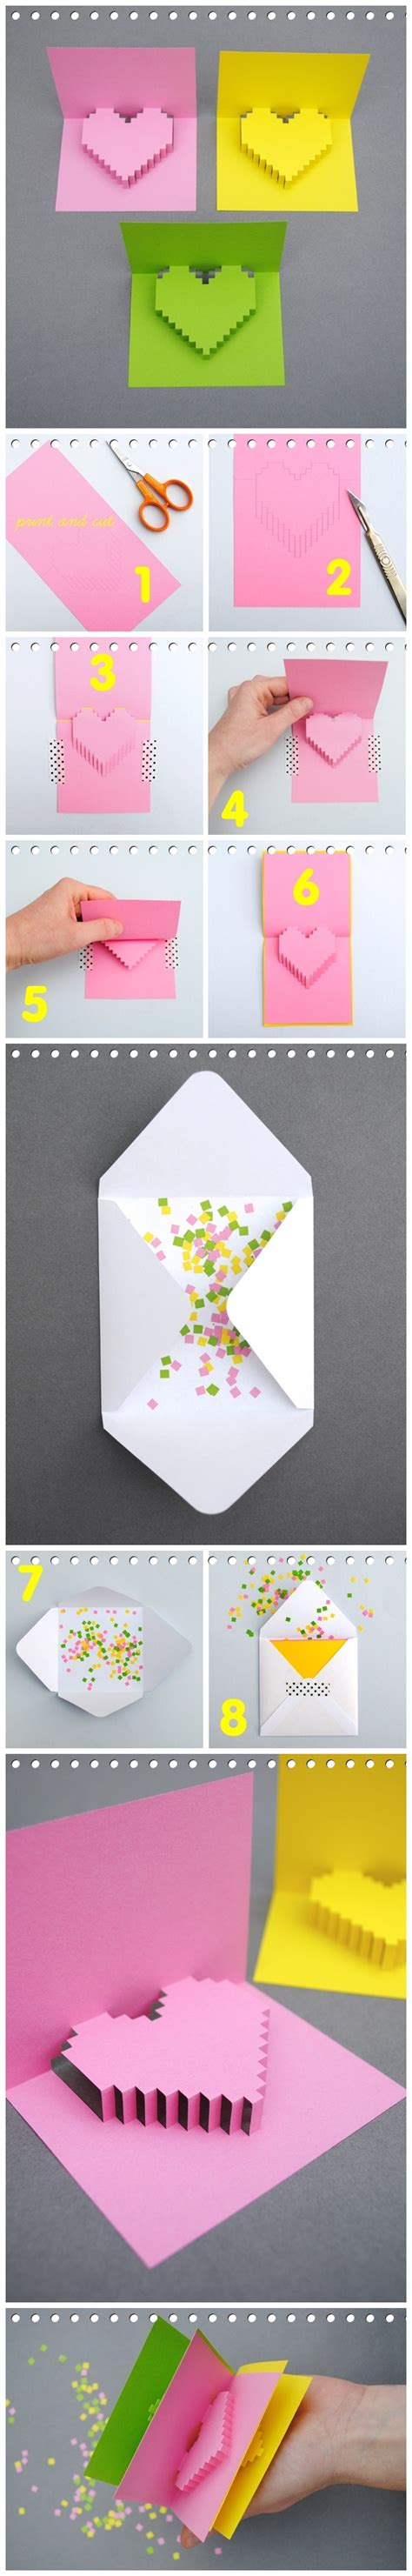 how to make a shaped card how to make 3d shape greeting card